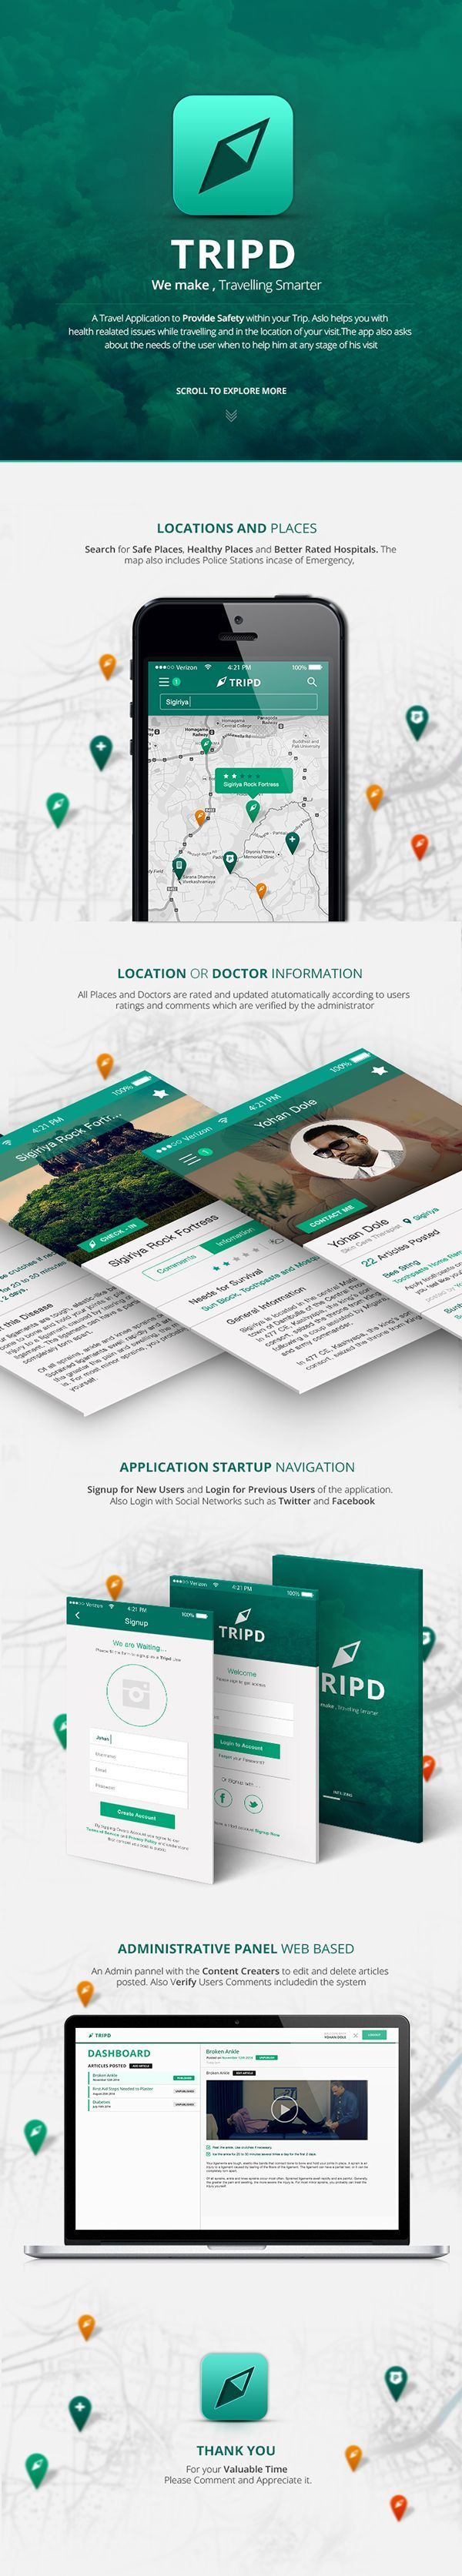 http://www.blogduwebdesign.com/webdesign/15-presentations-applications-mobiles-remarquables/2056